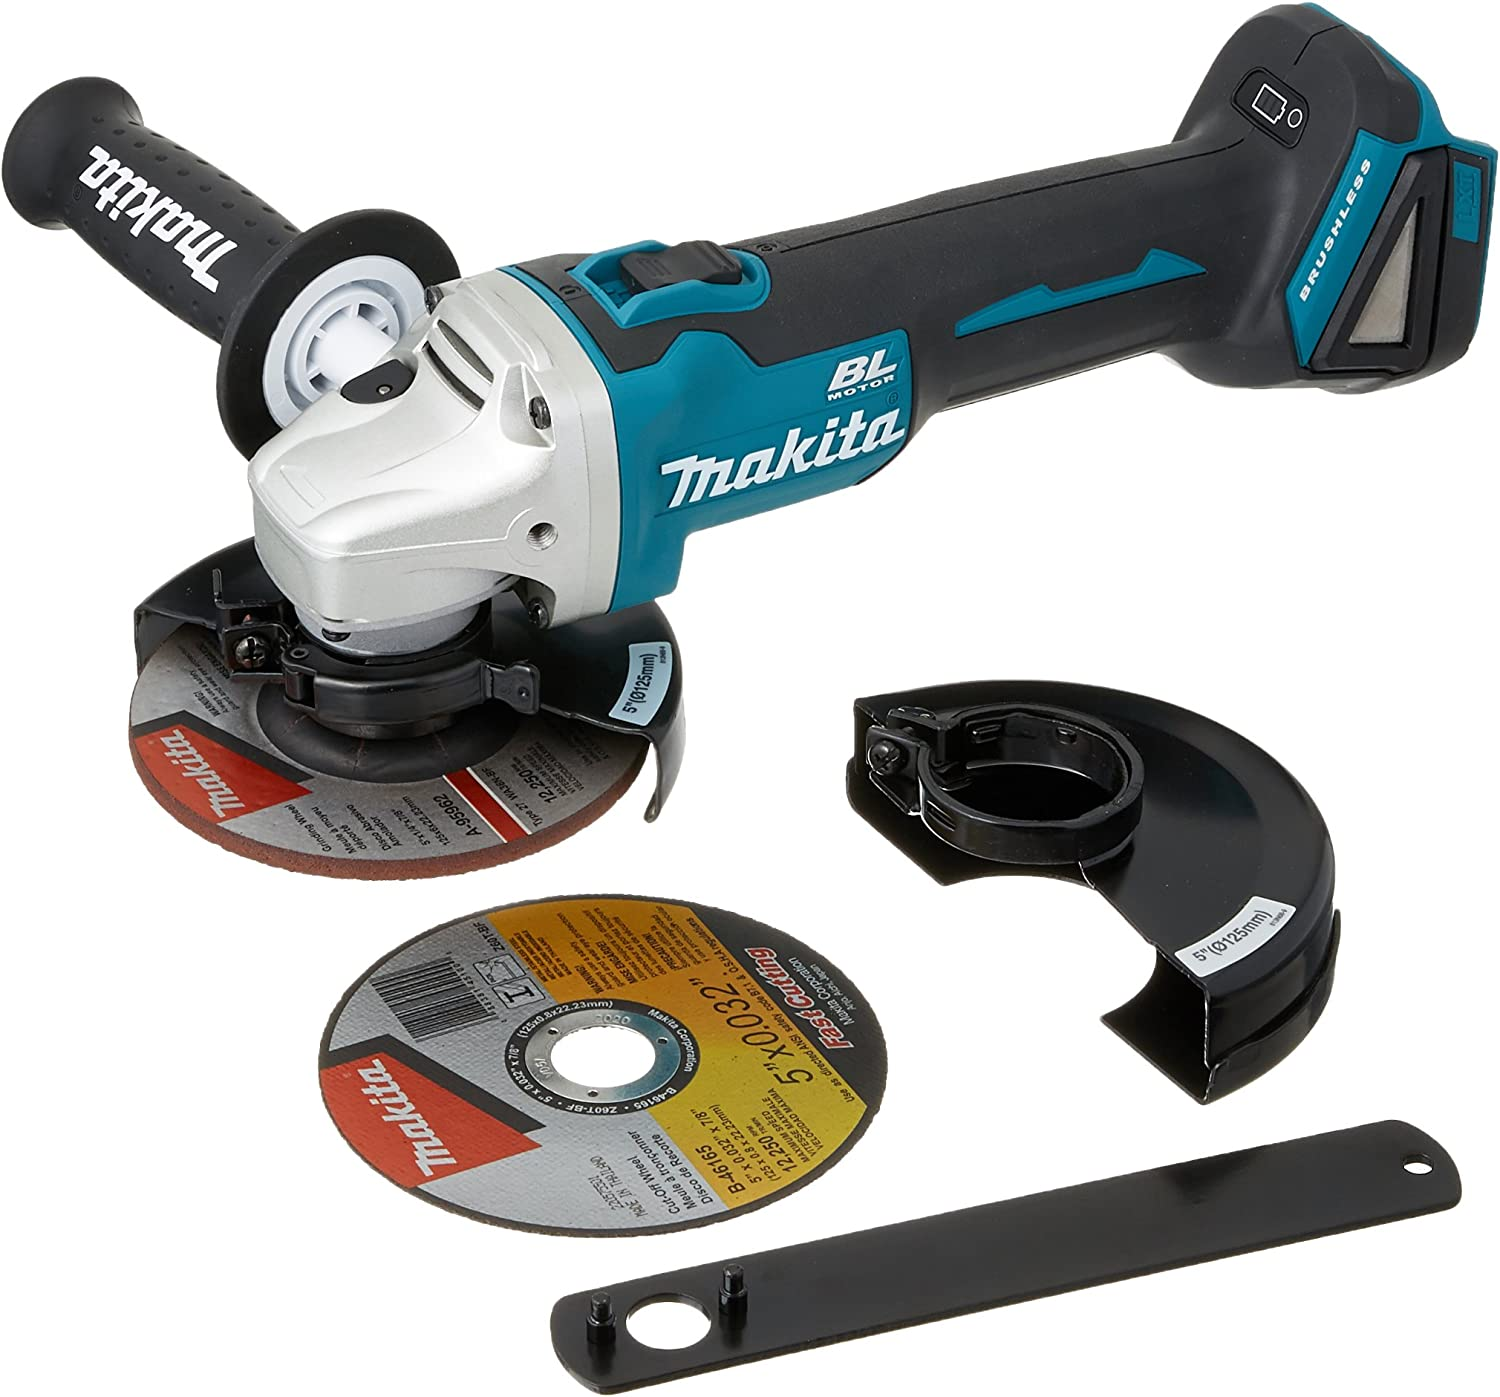 "Makita XAG09Z 18V LXT Lithium-Ion, Brushless, Cordless 4 ½"" Angle Grinder"